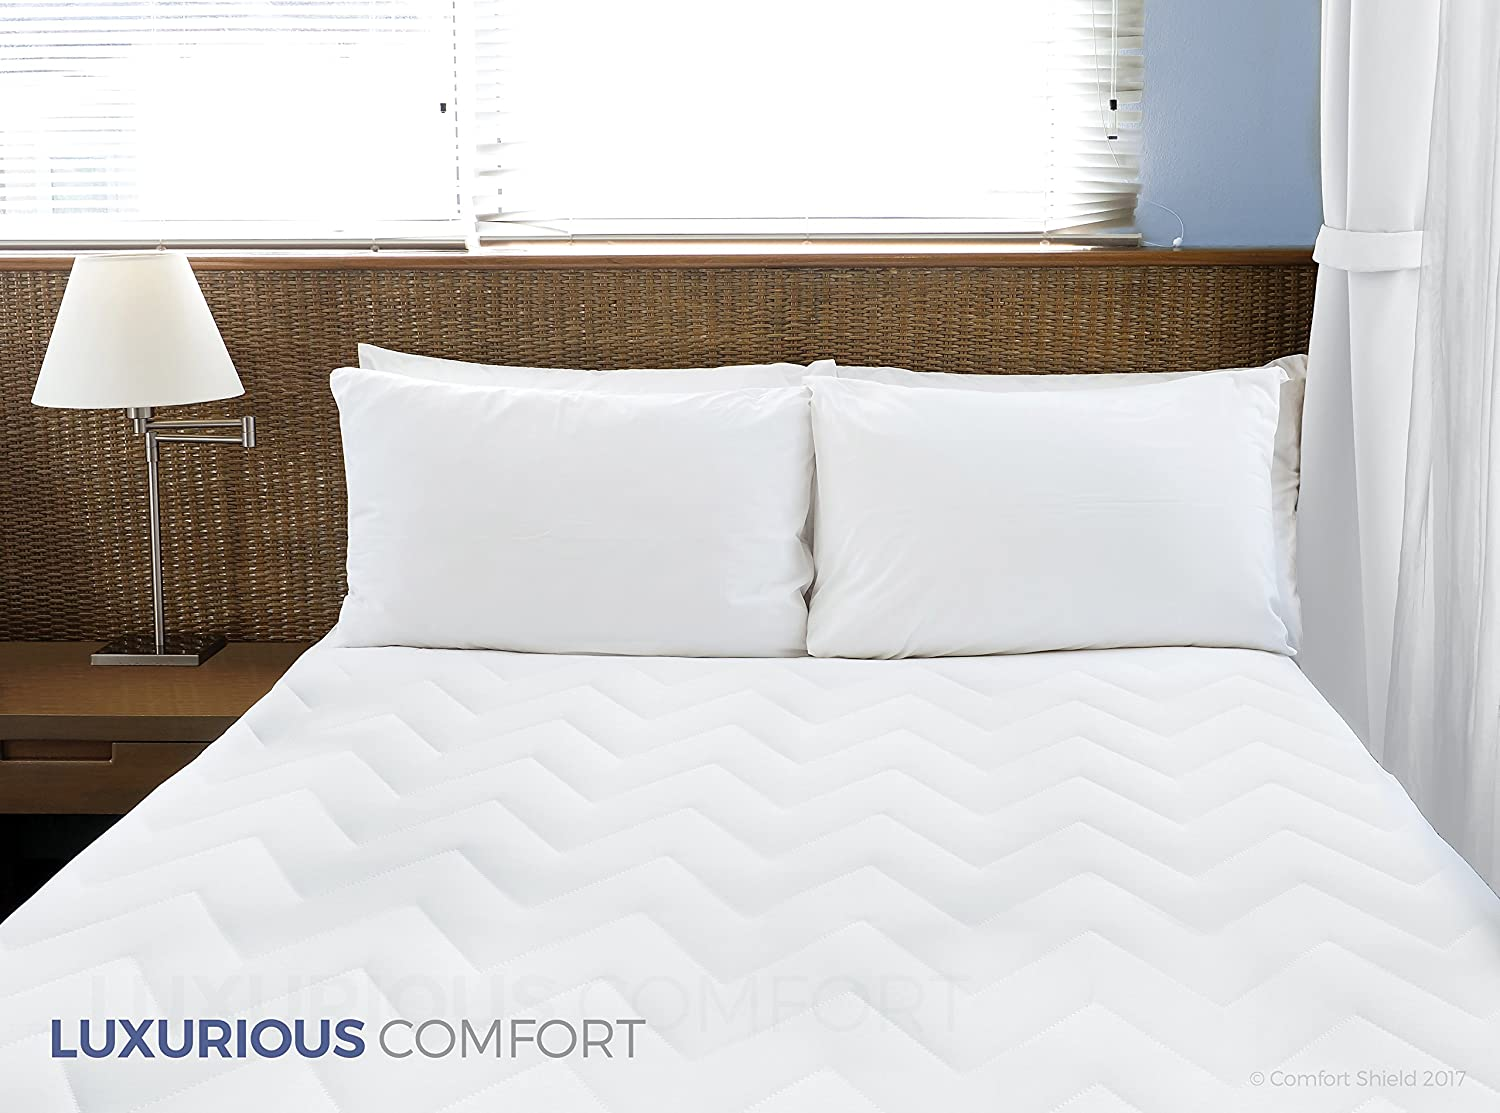 Amazon.com: Comfort Shield High Loft Quilted 100Percent Cotton Mattress Pad with Deep Expandable Knit Skirt 22 Inch -Washable- 10 Warranty-Twin: Home & ...